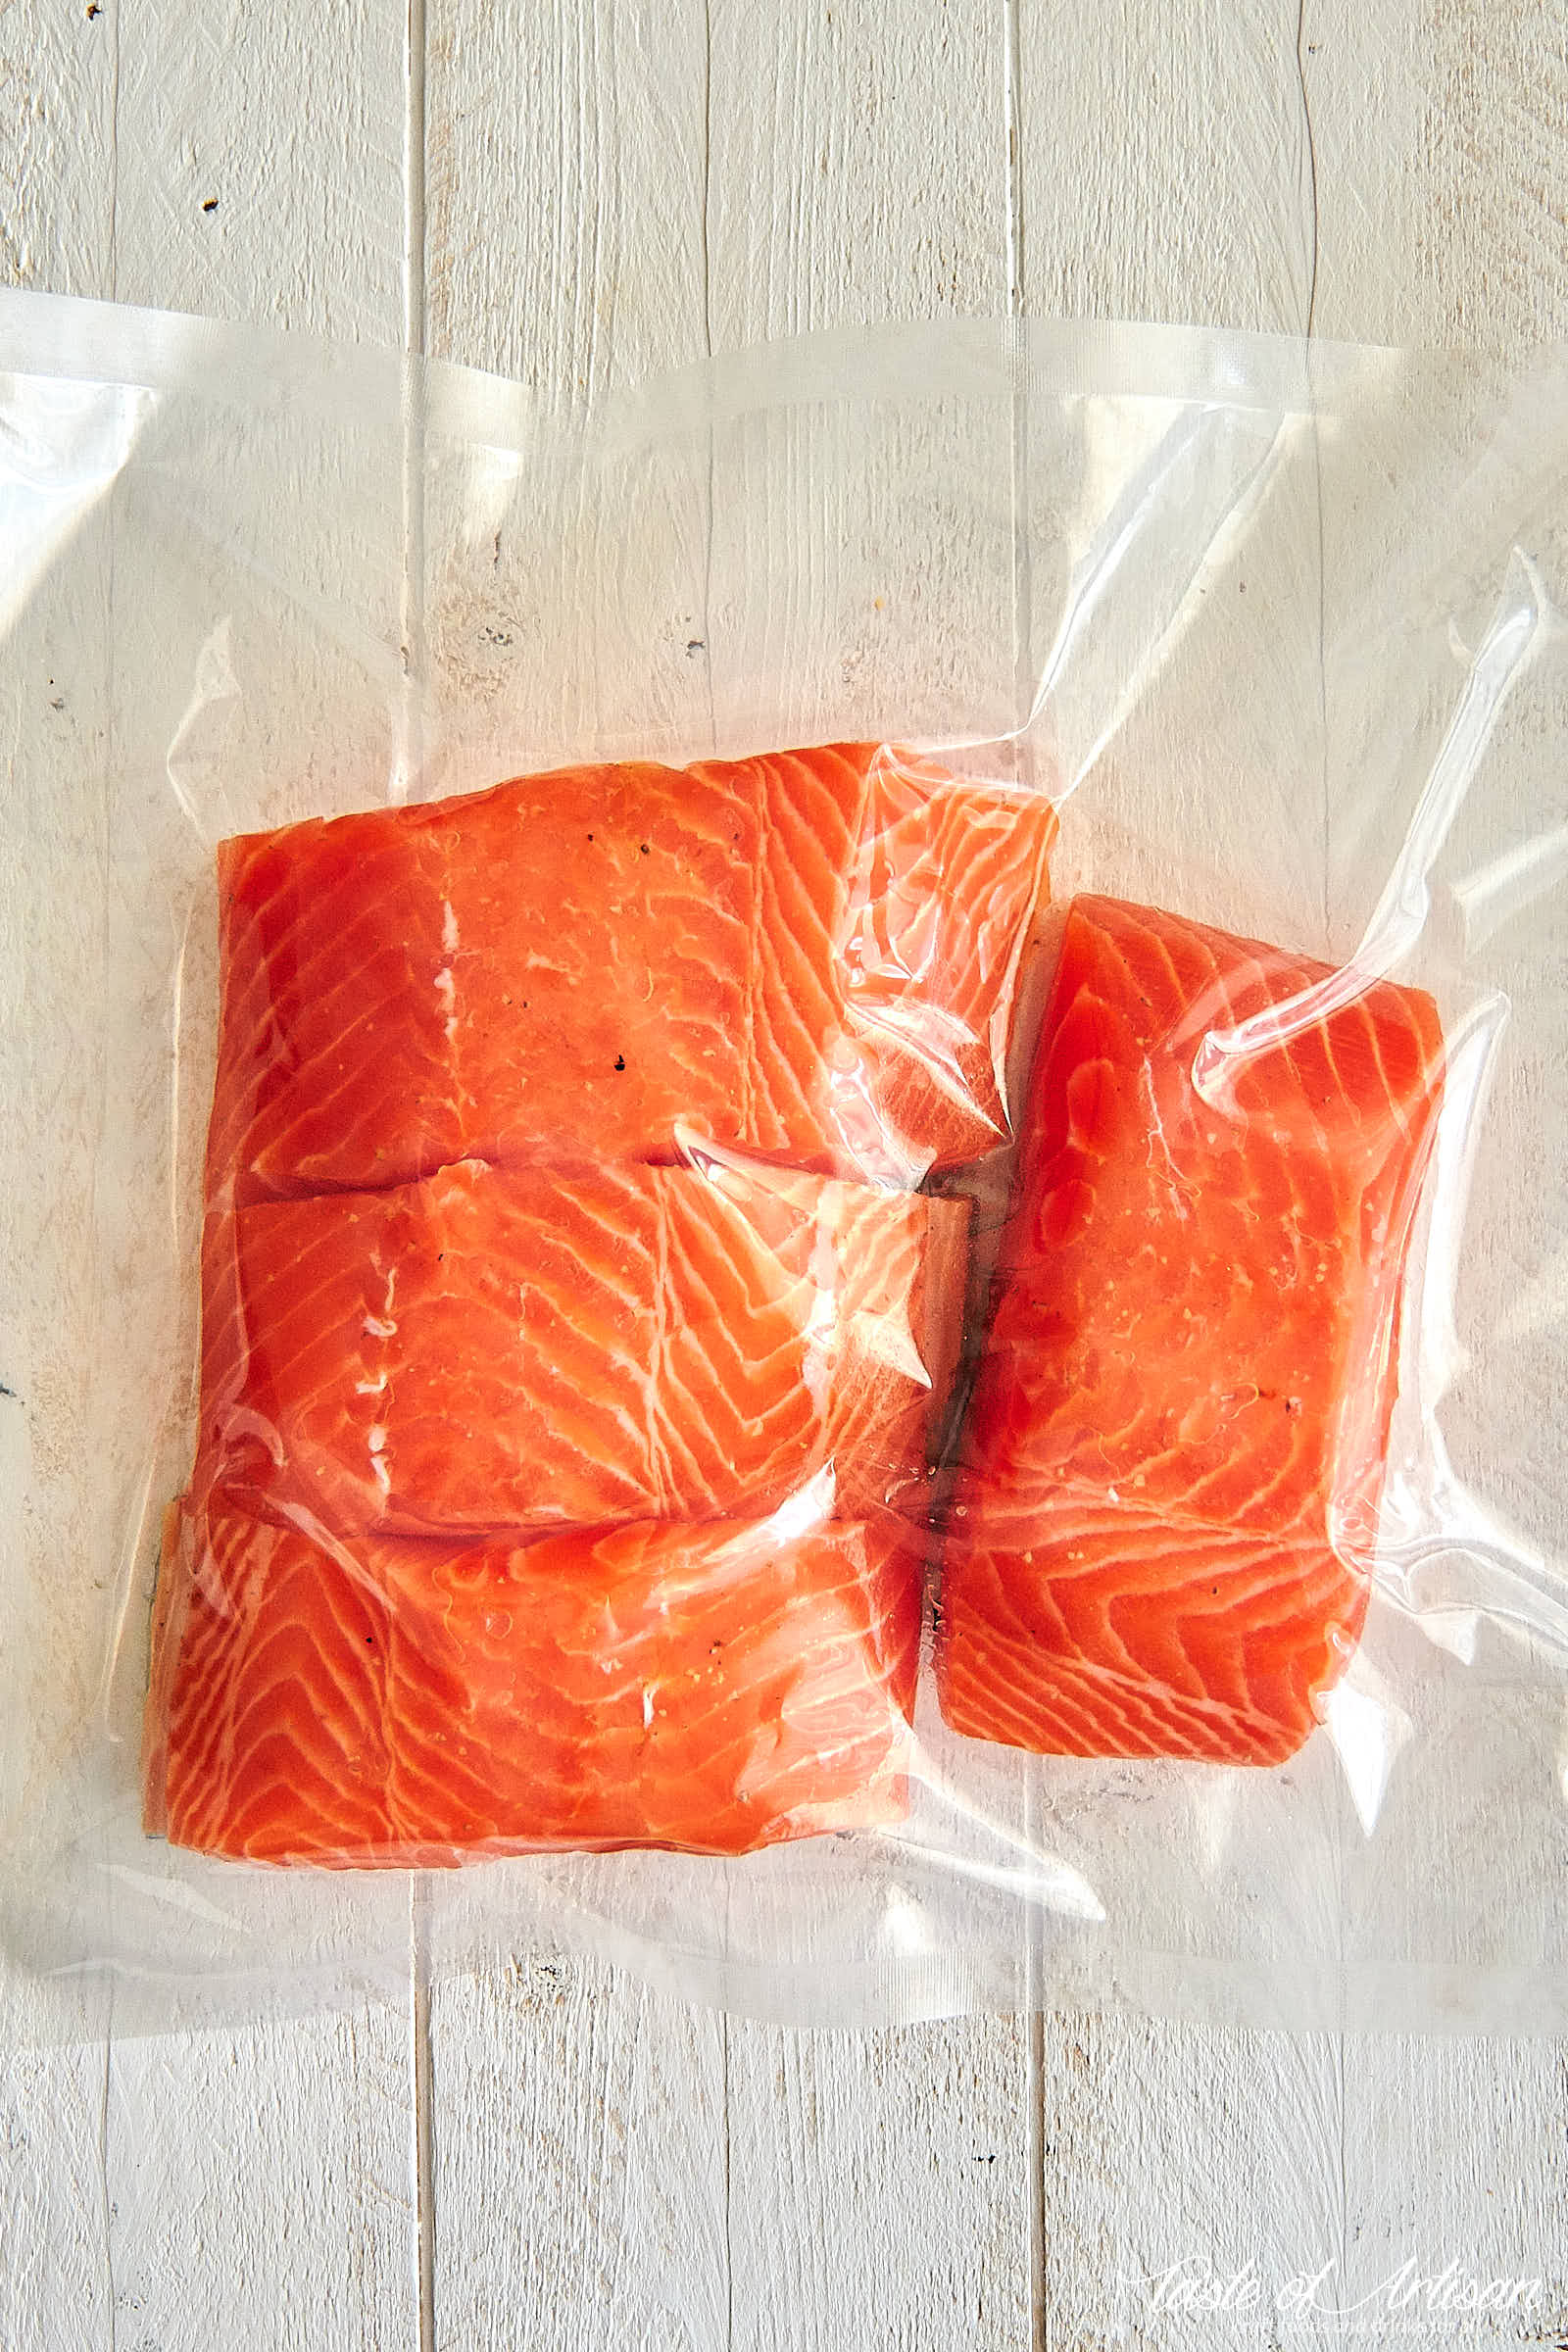 Sous Vide Salmon - vacuum sealed and ready for cooking. | Taste of Artisan